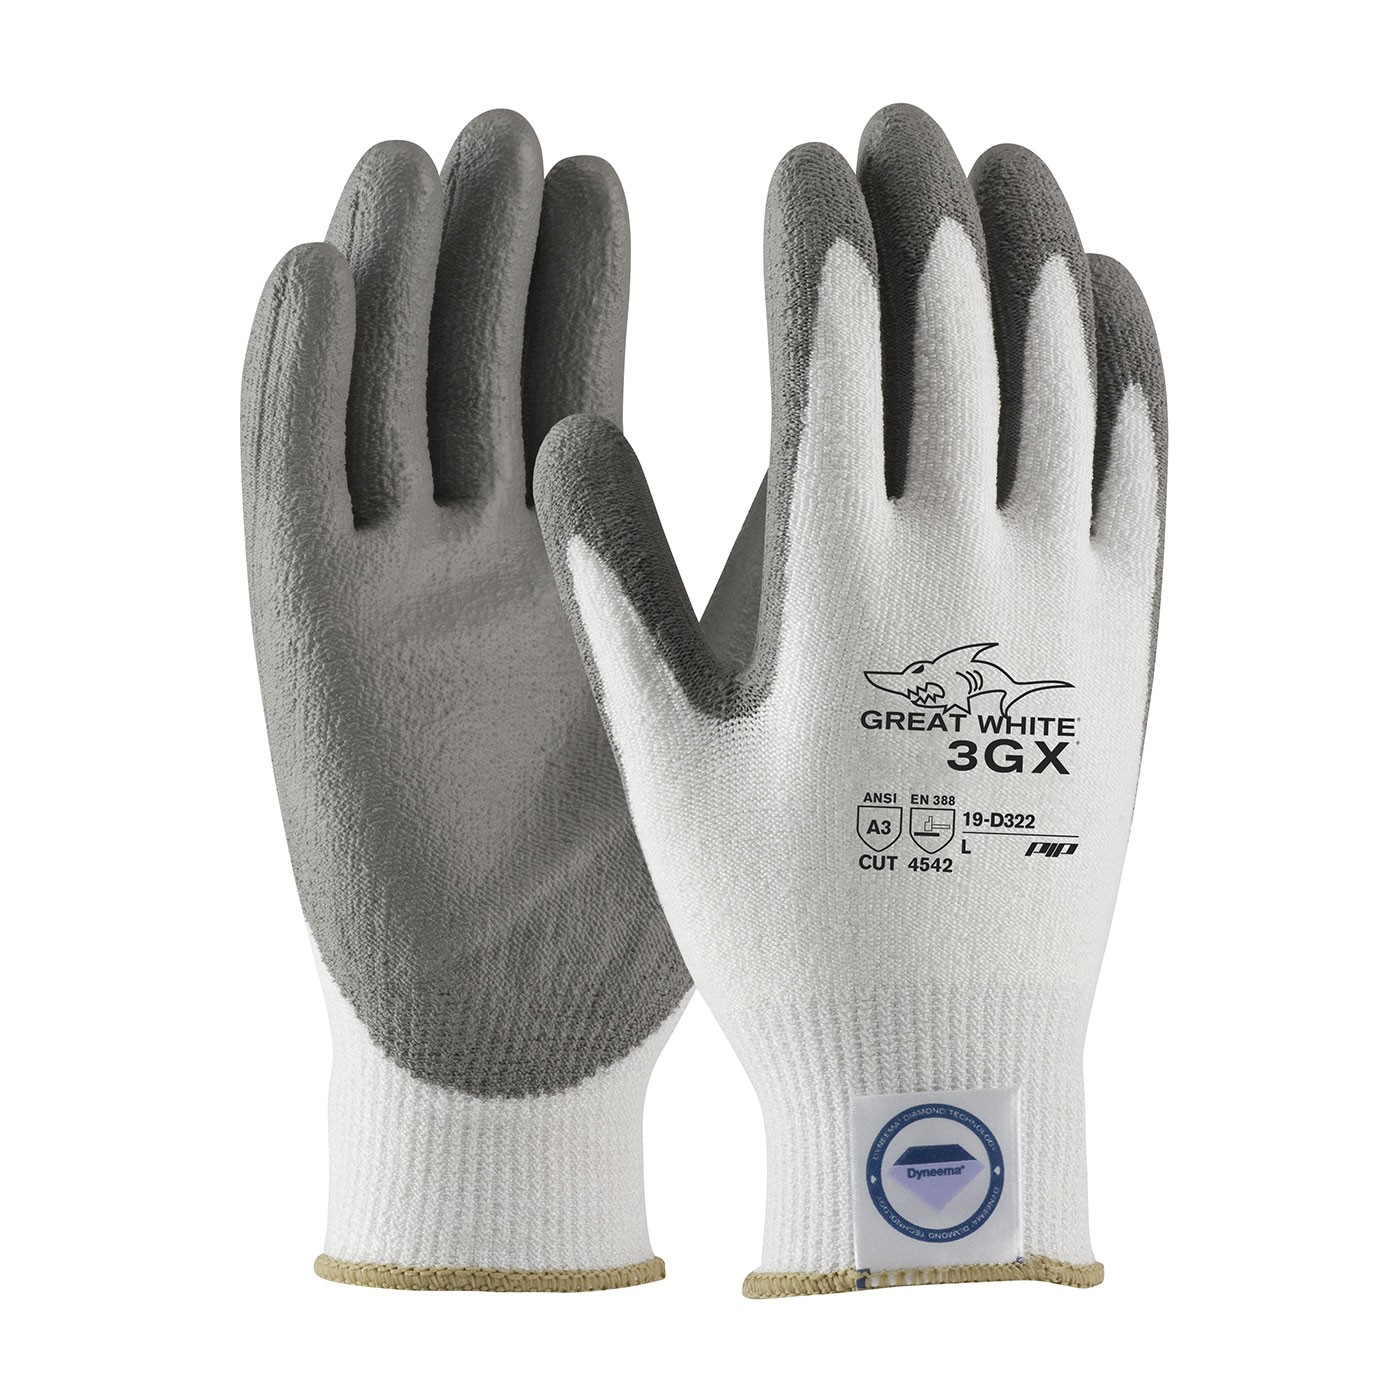 PIP 19-D322 Great White 3GX Seamless Knit Dyneema Diamond Lycra Gloves